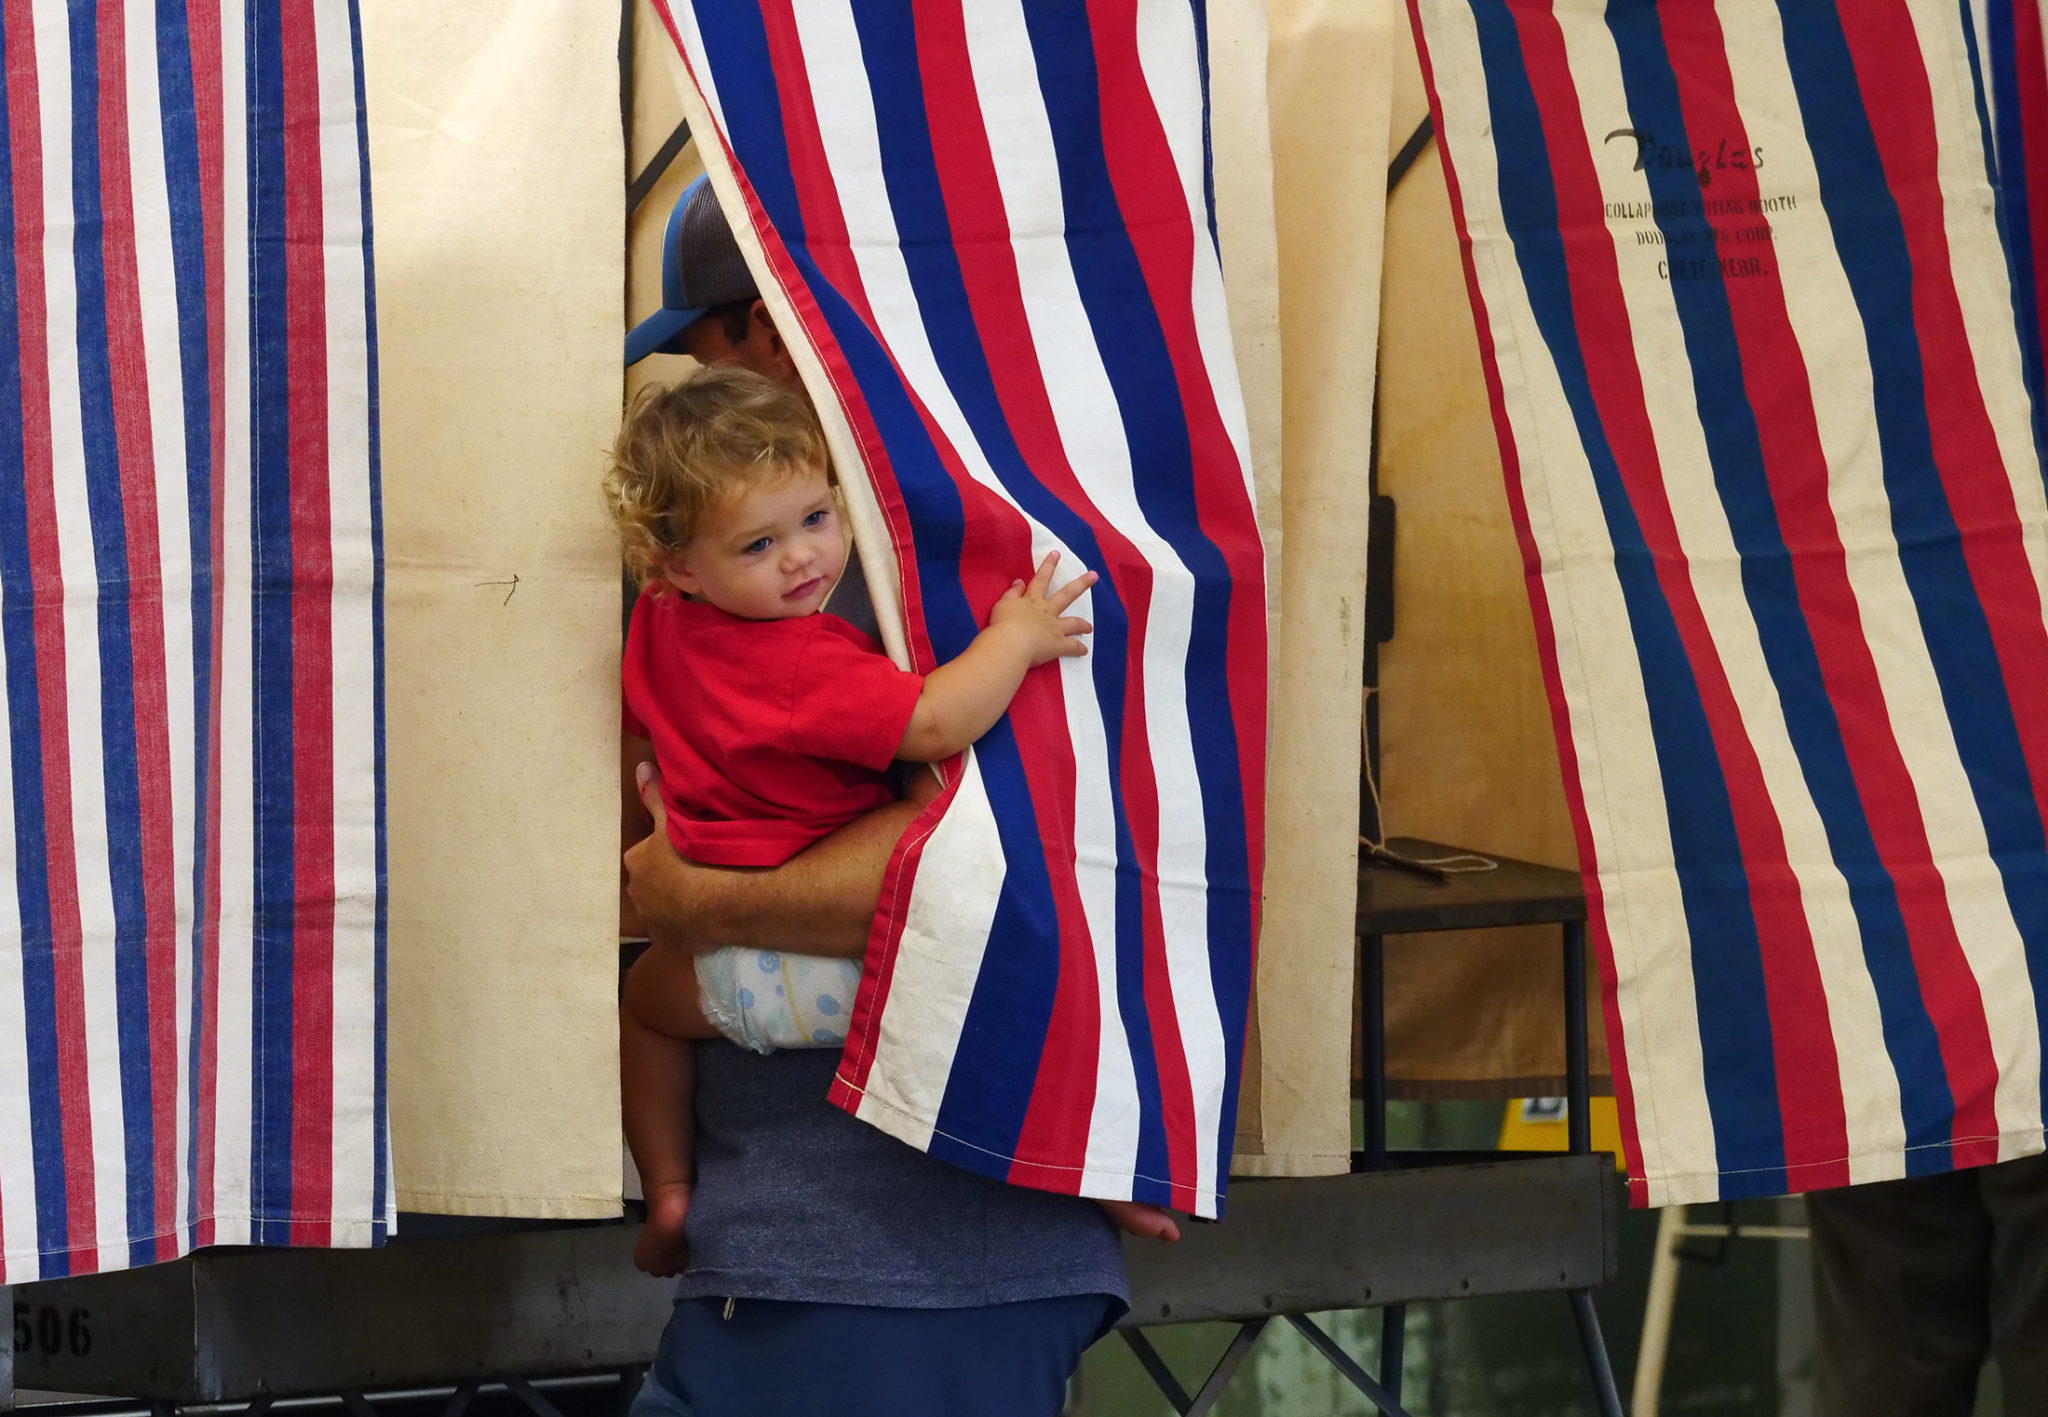 <p>Taj Brady, 1, peeks from behind the voting booth curtain as his father, Sean Brady, votes at Kailua Elementary School on Saturday morning.</p>